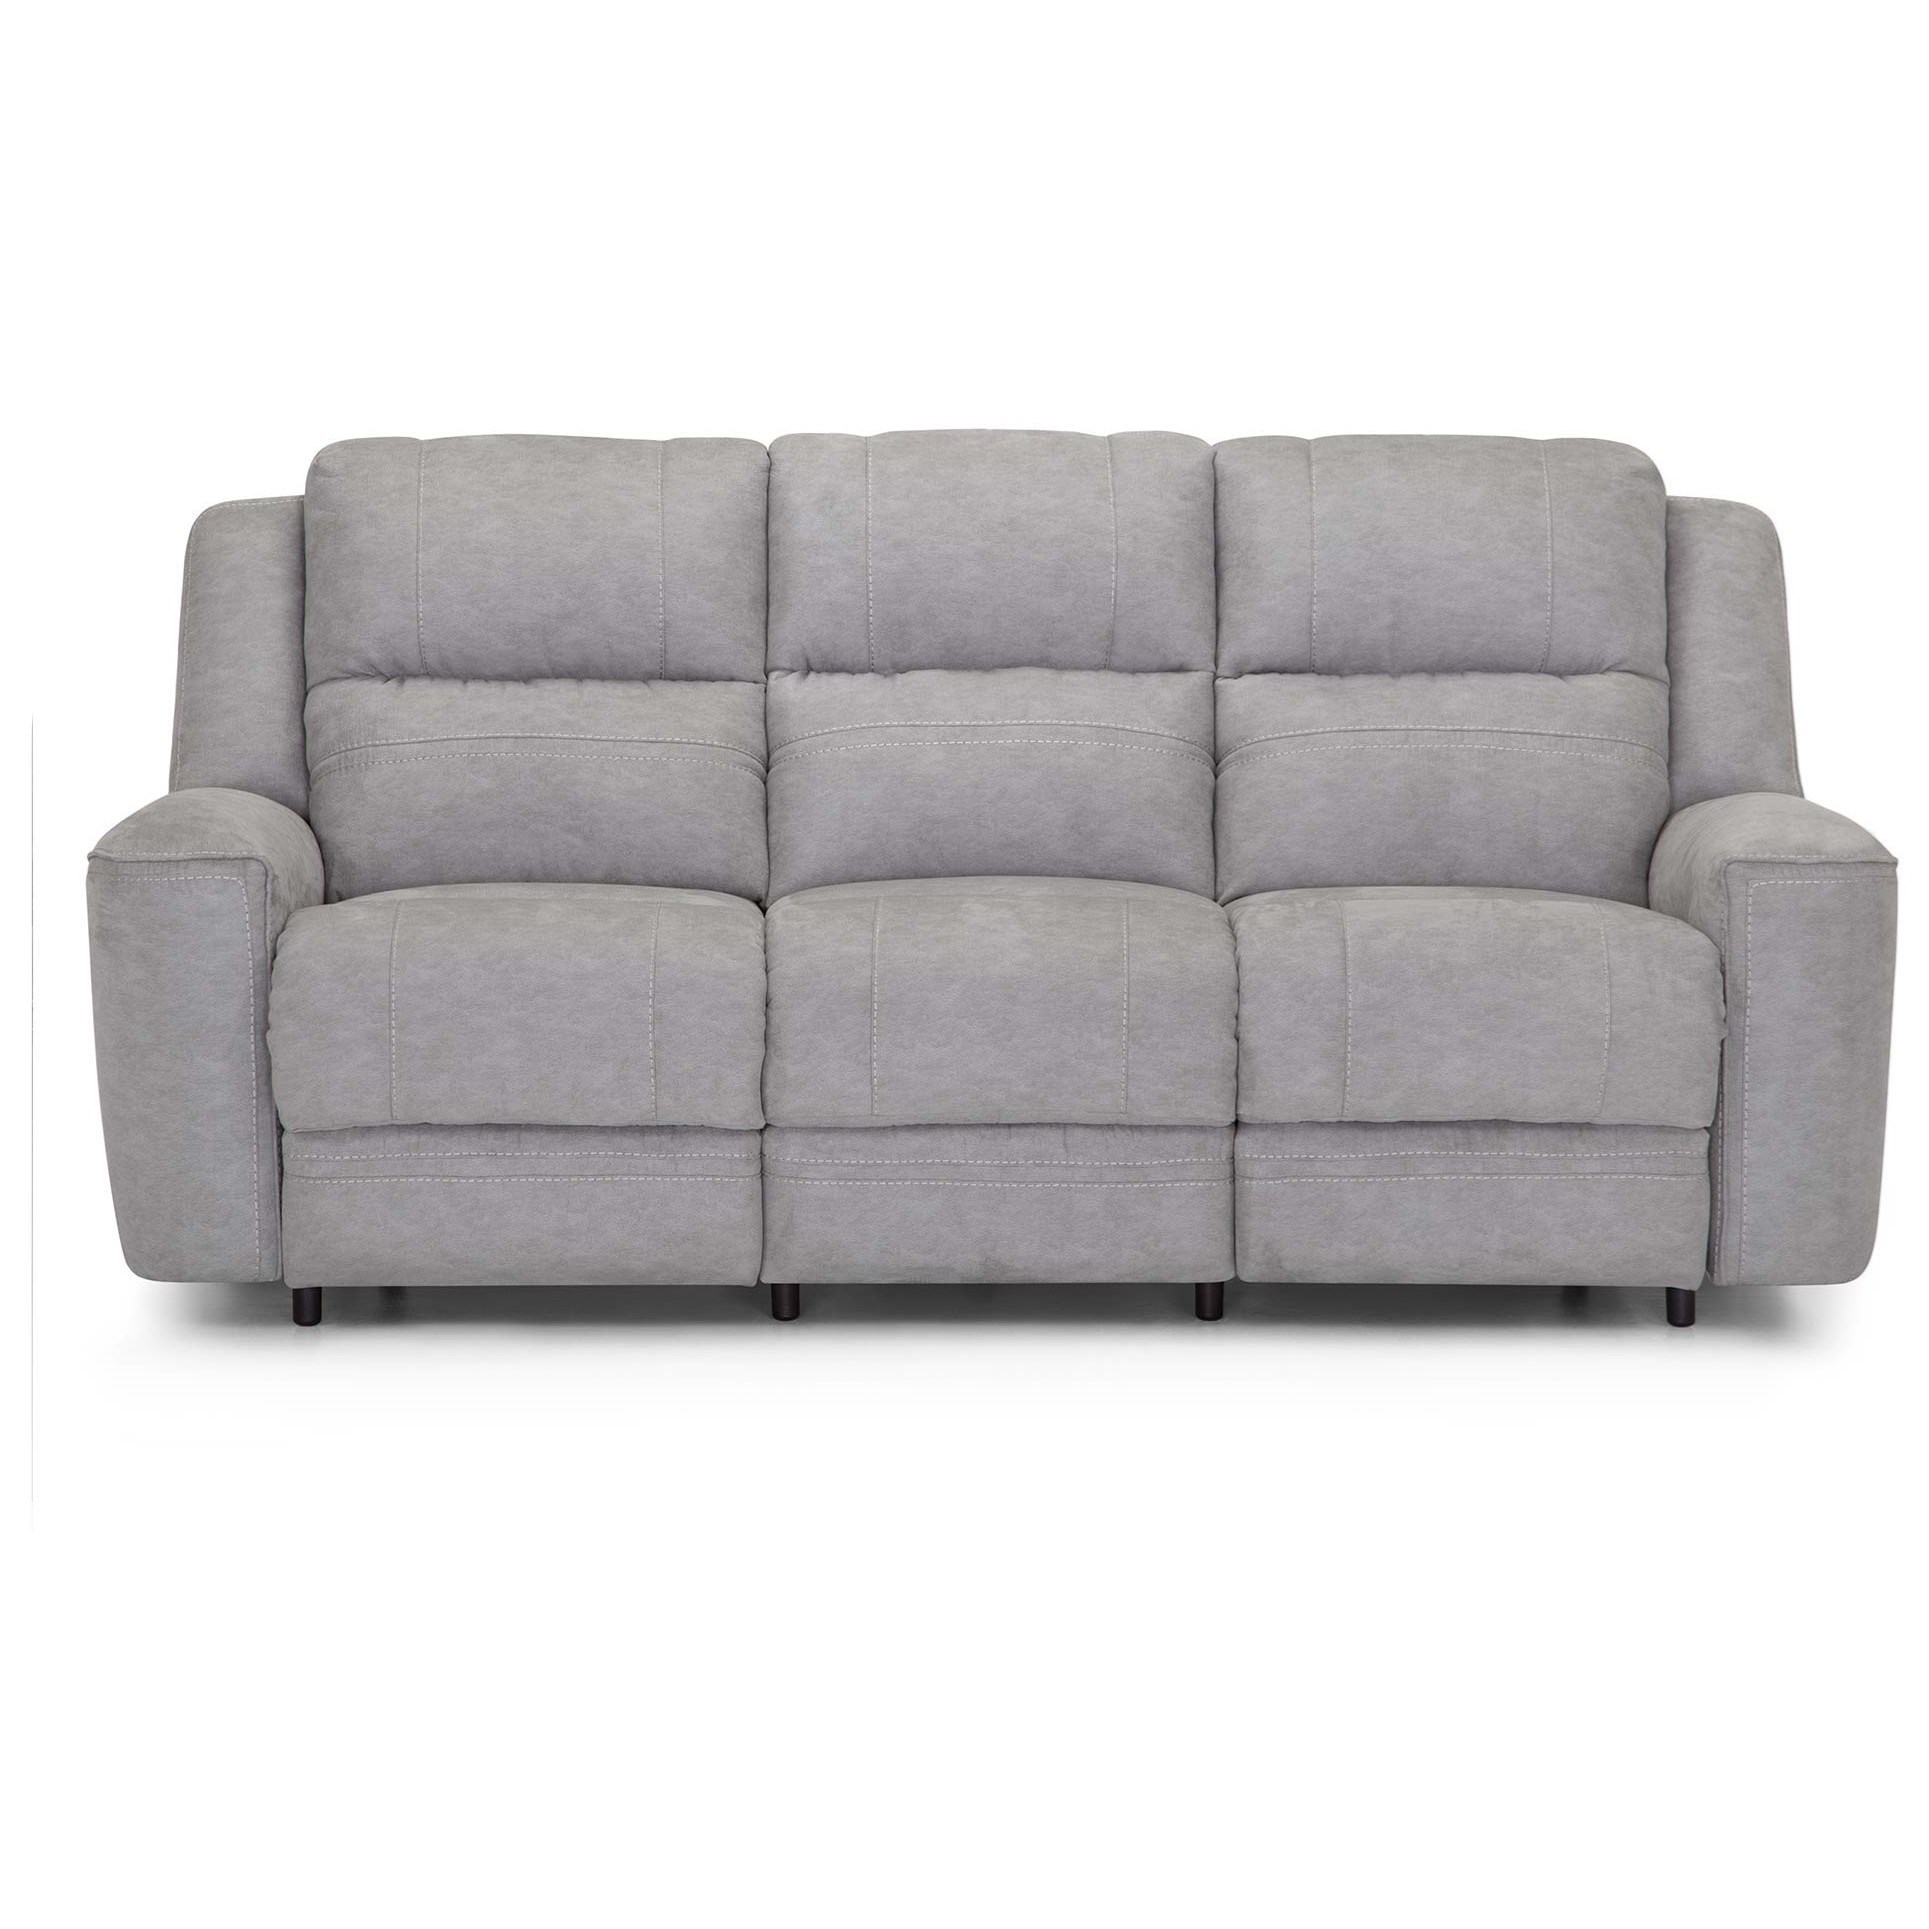 762 Dual Power Reclining Sofa with USB Port by Franklin at Van Hill Furniture